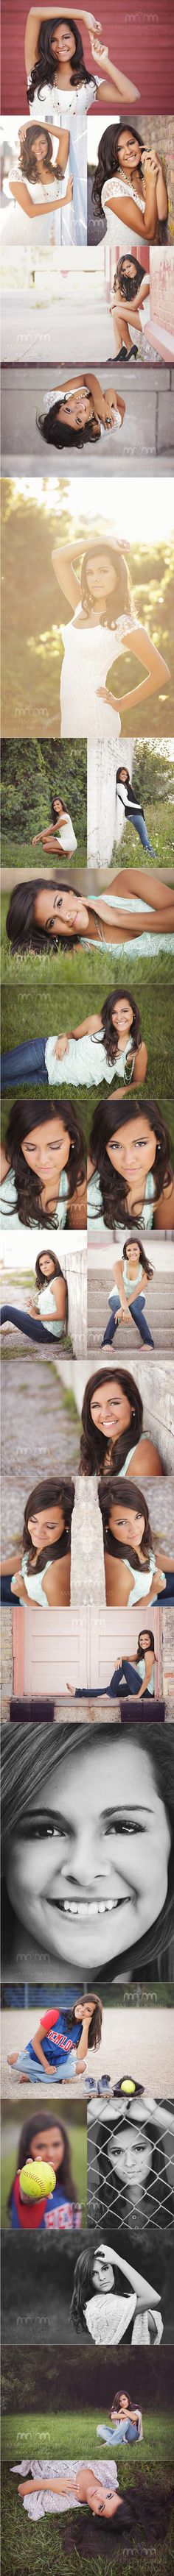 Senior poses girls